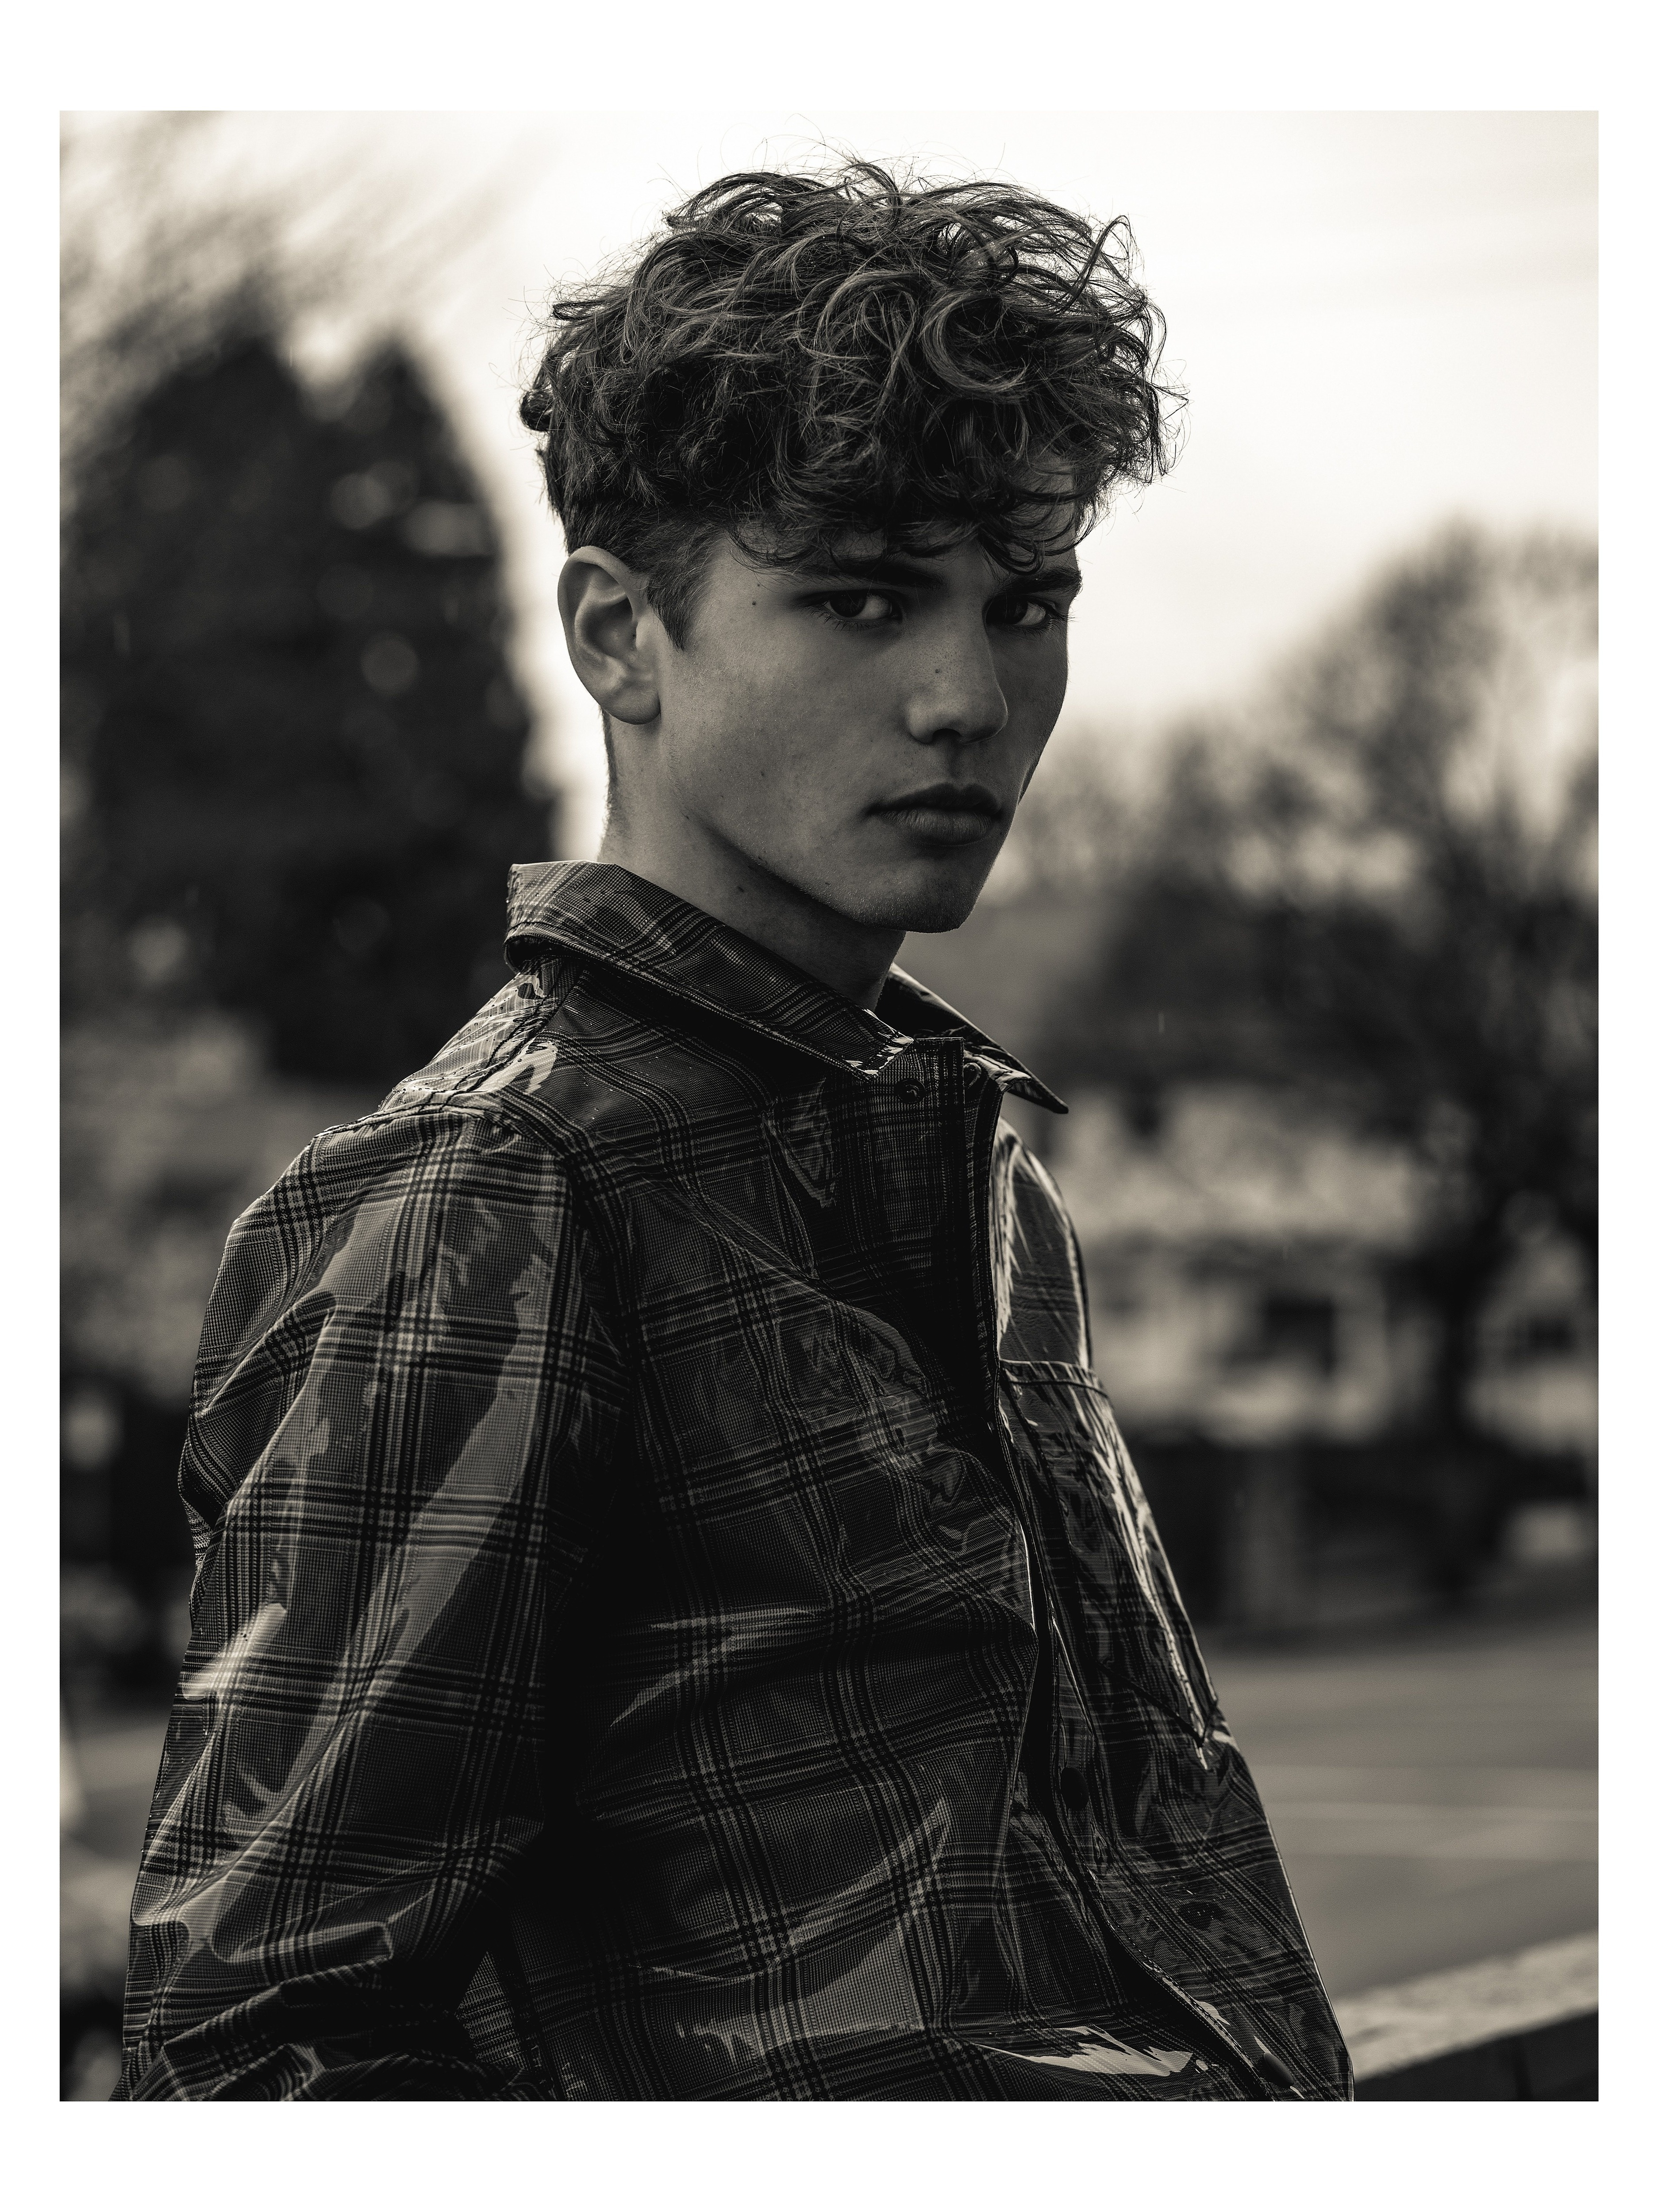 Zech Hinds for Lucy's Magazine by Eluvier Acosta